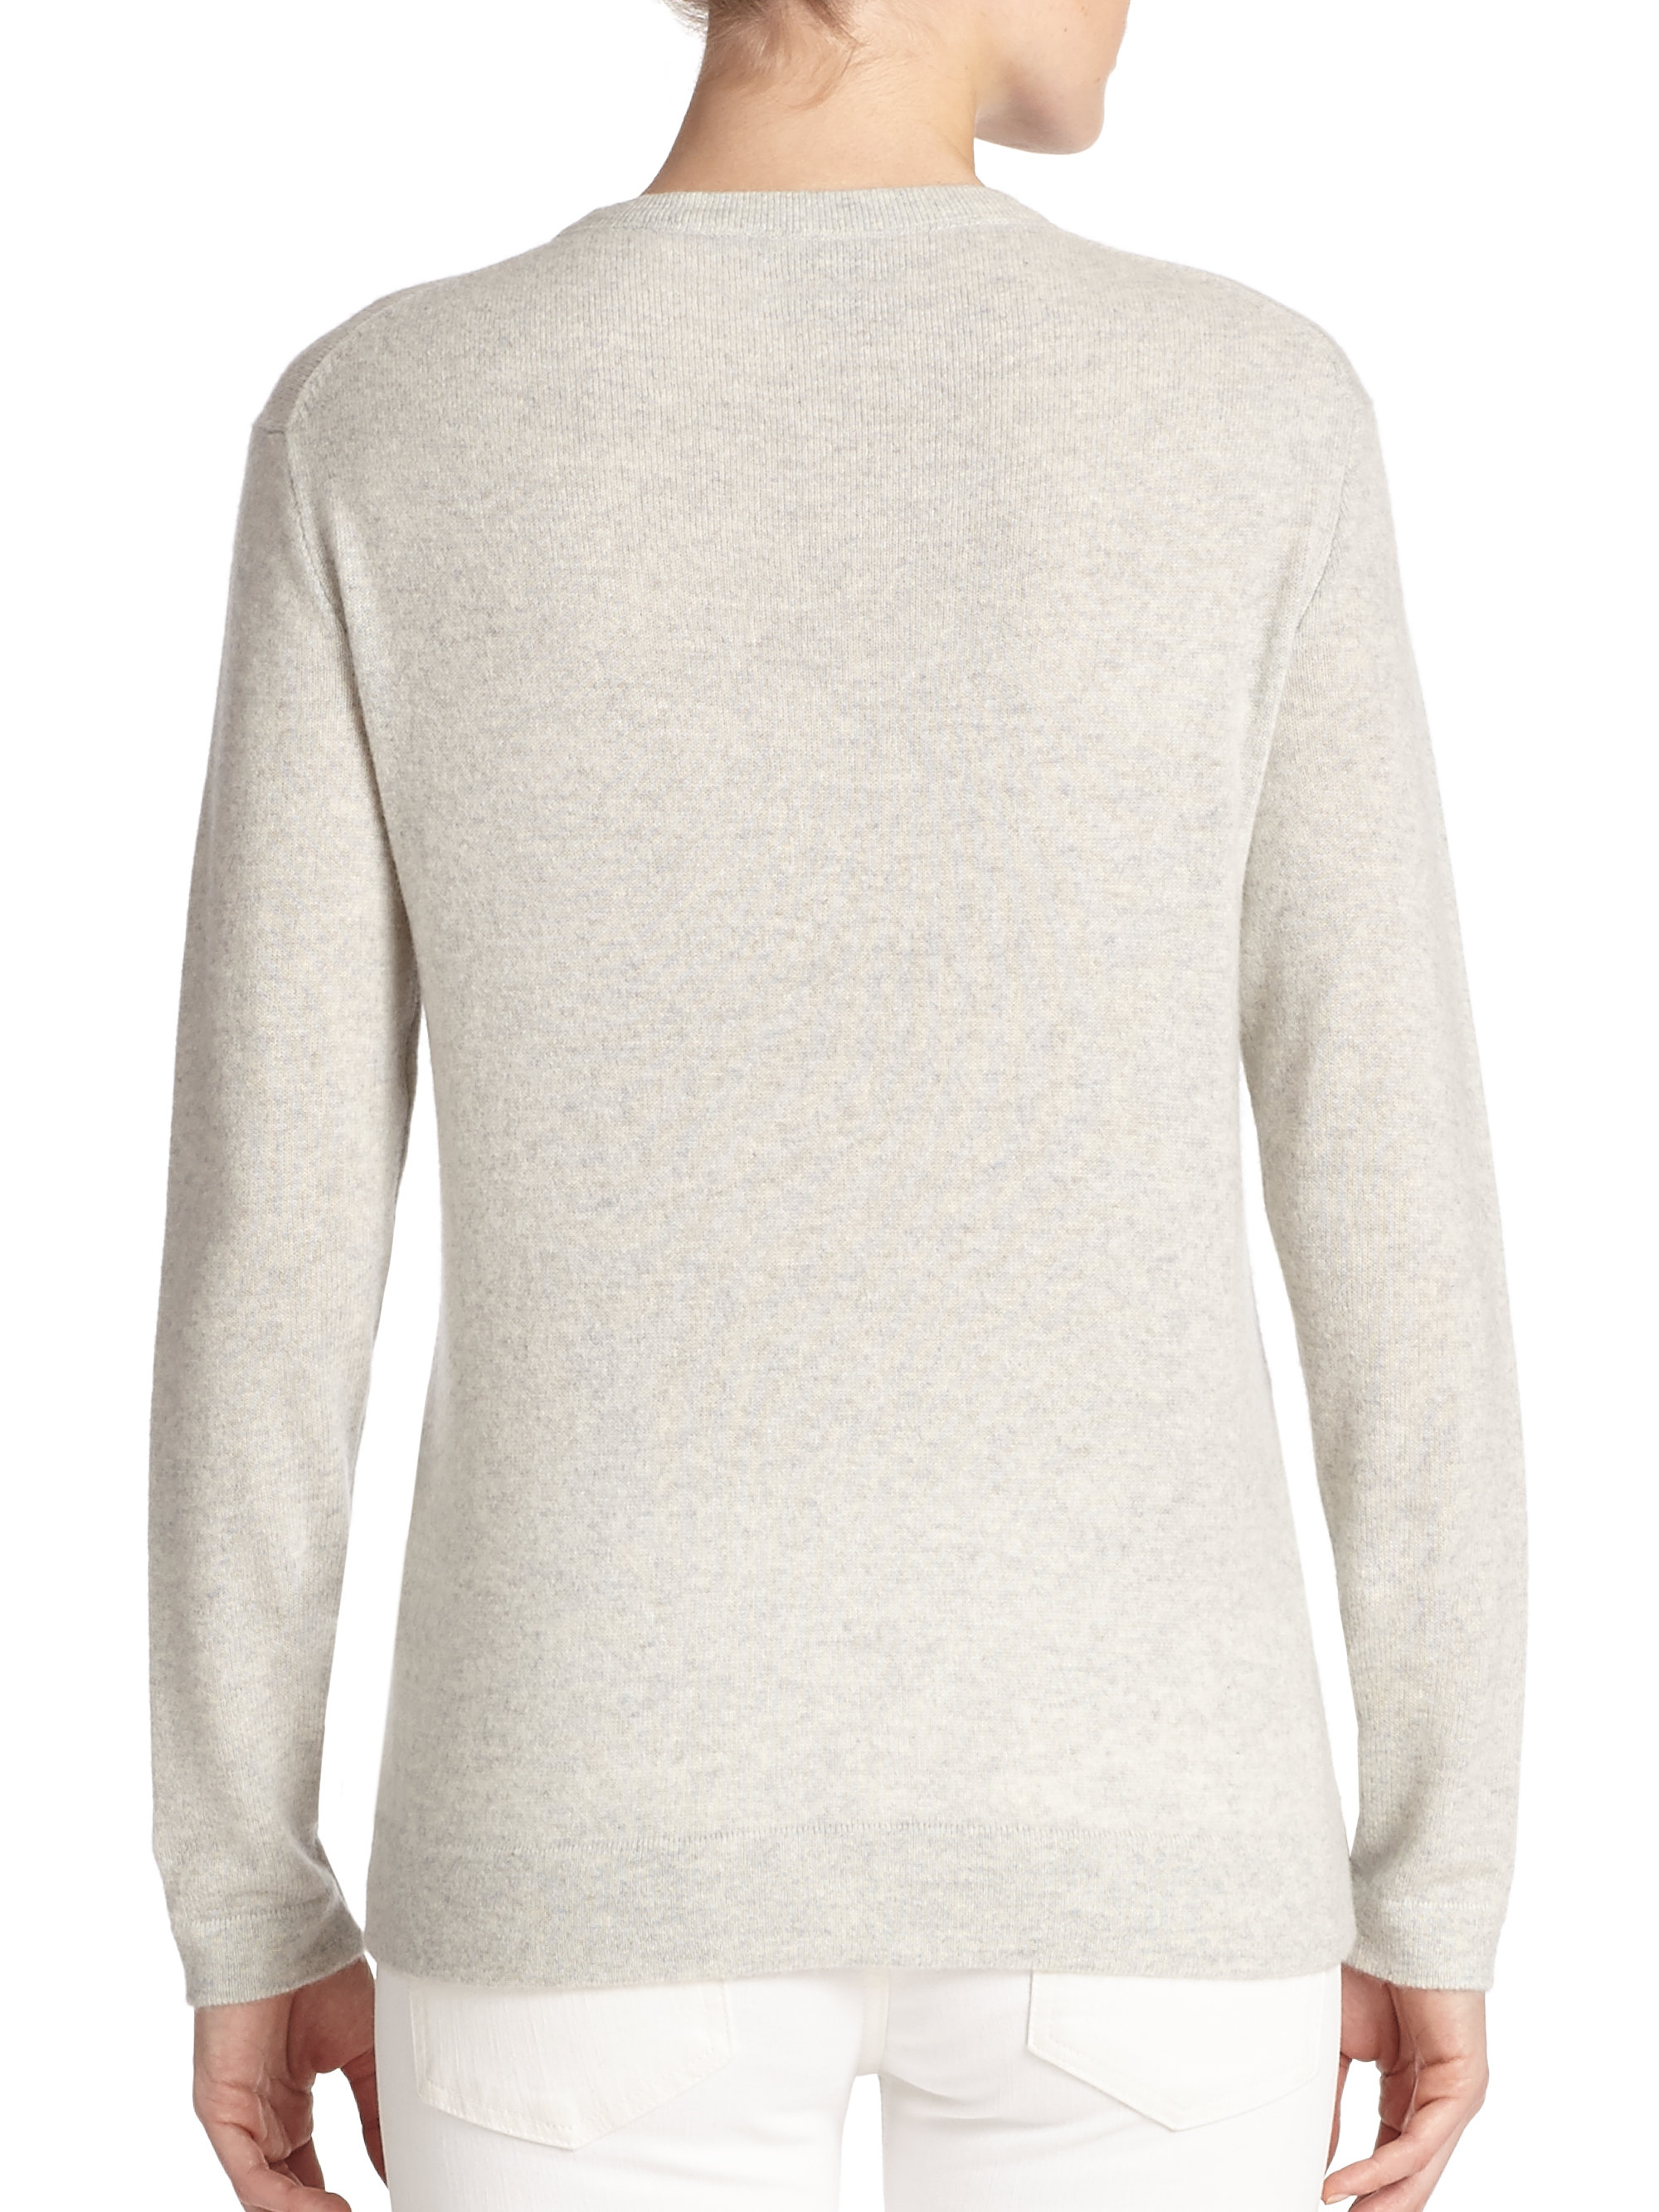 Polo ralph lauren Cashmere Crewneck Sweater in Gray | Lyst